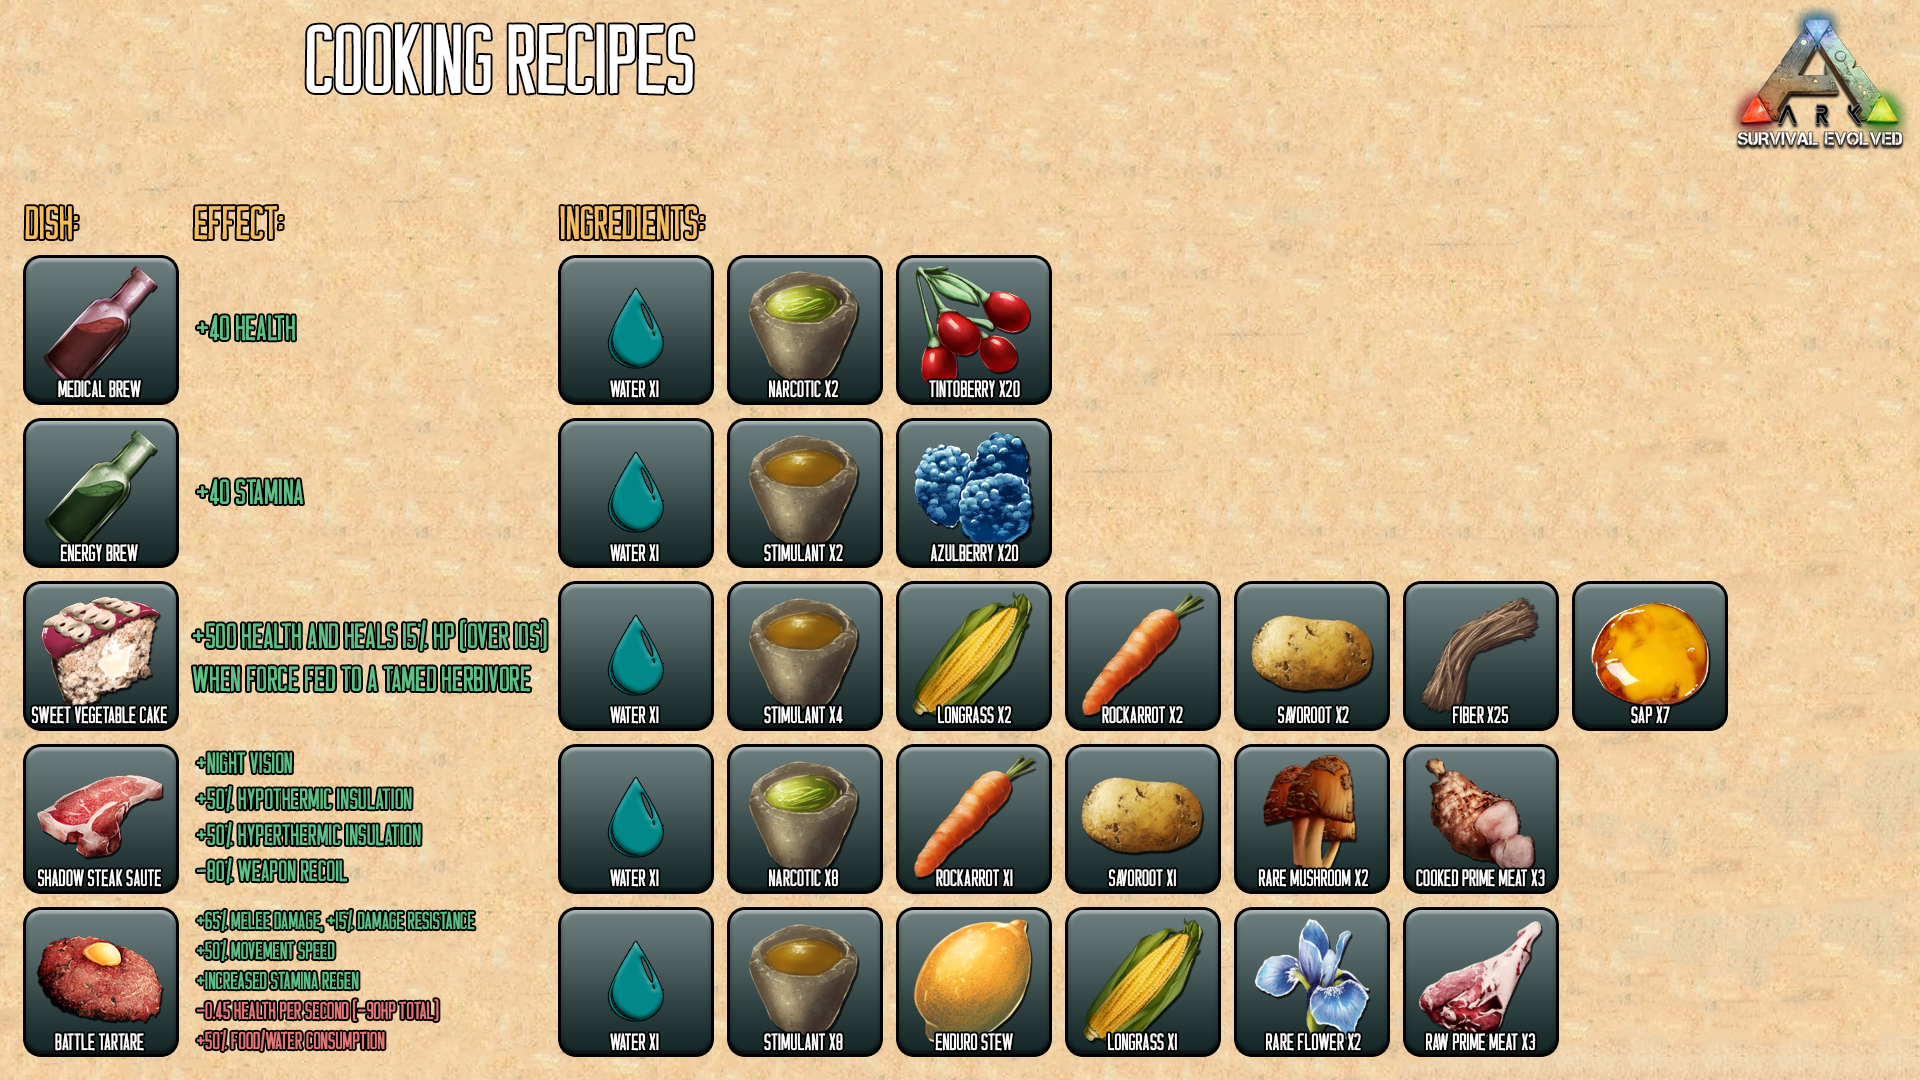 Steam community guide en ark graphical cheat sheets for cooking recipes forumfinder Images